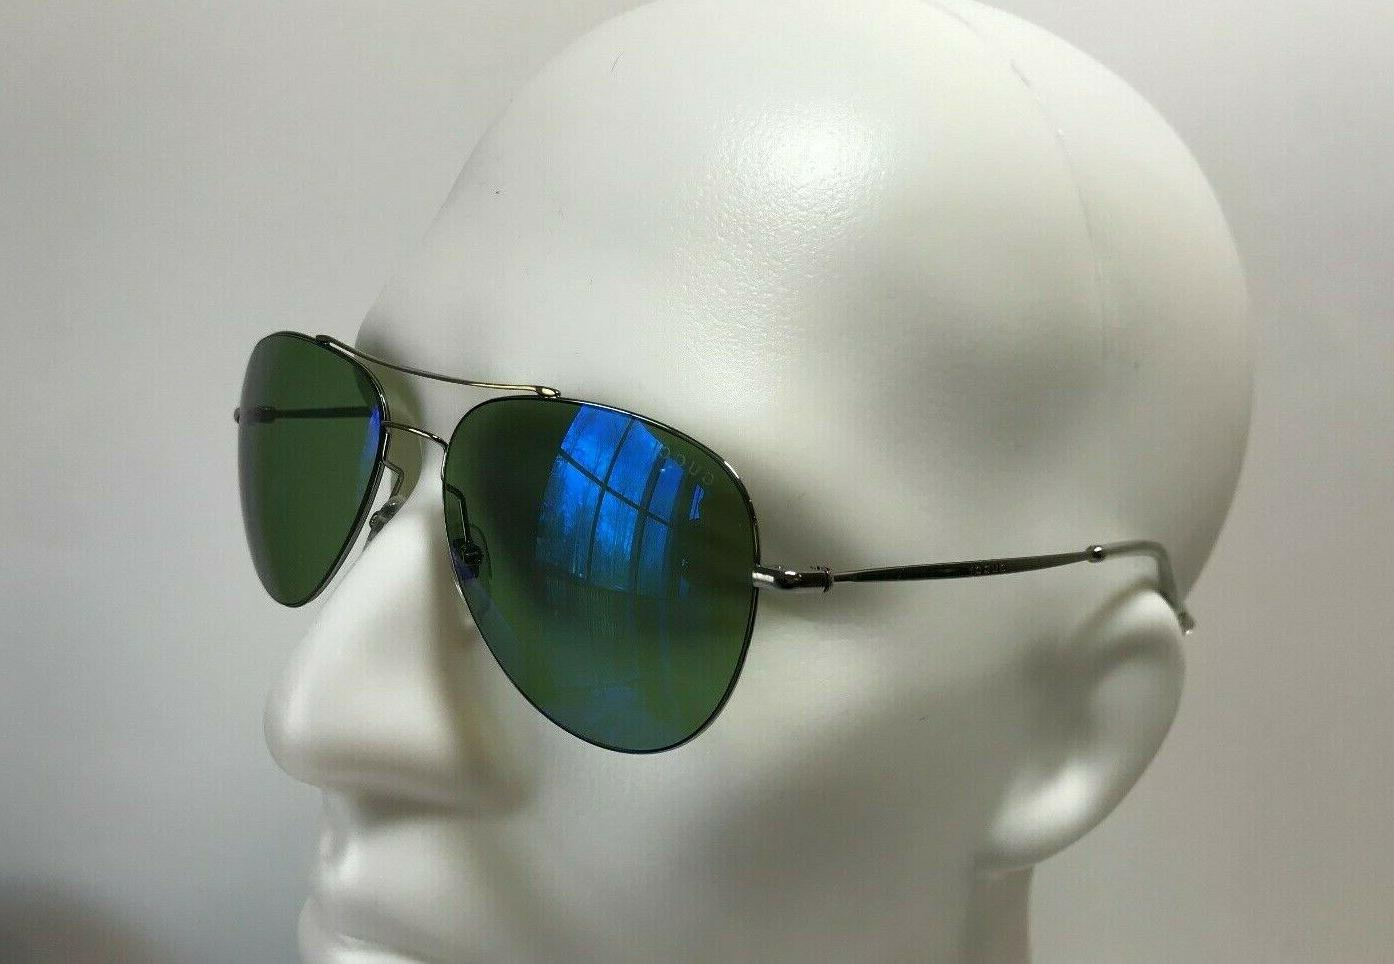 brand new aviator sunglasses gg0500s 003 59mm